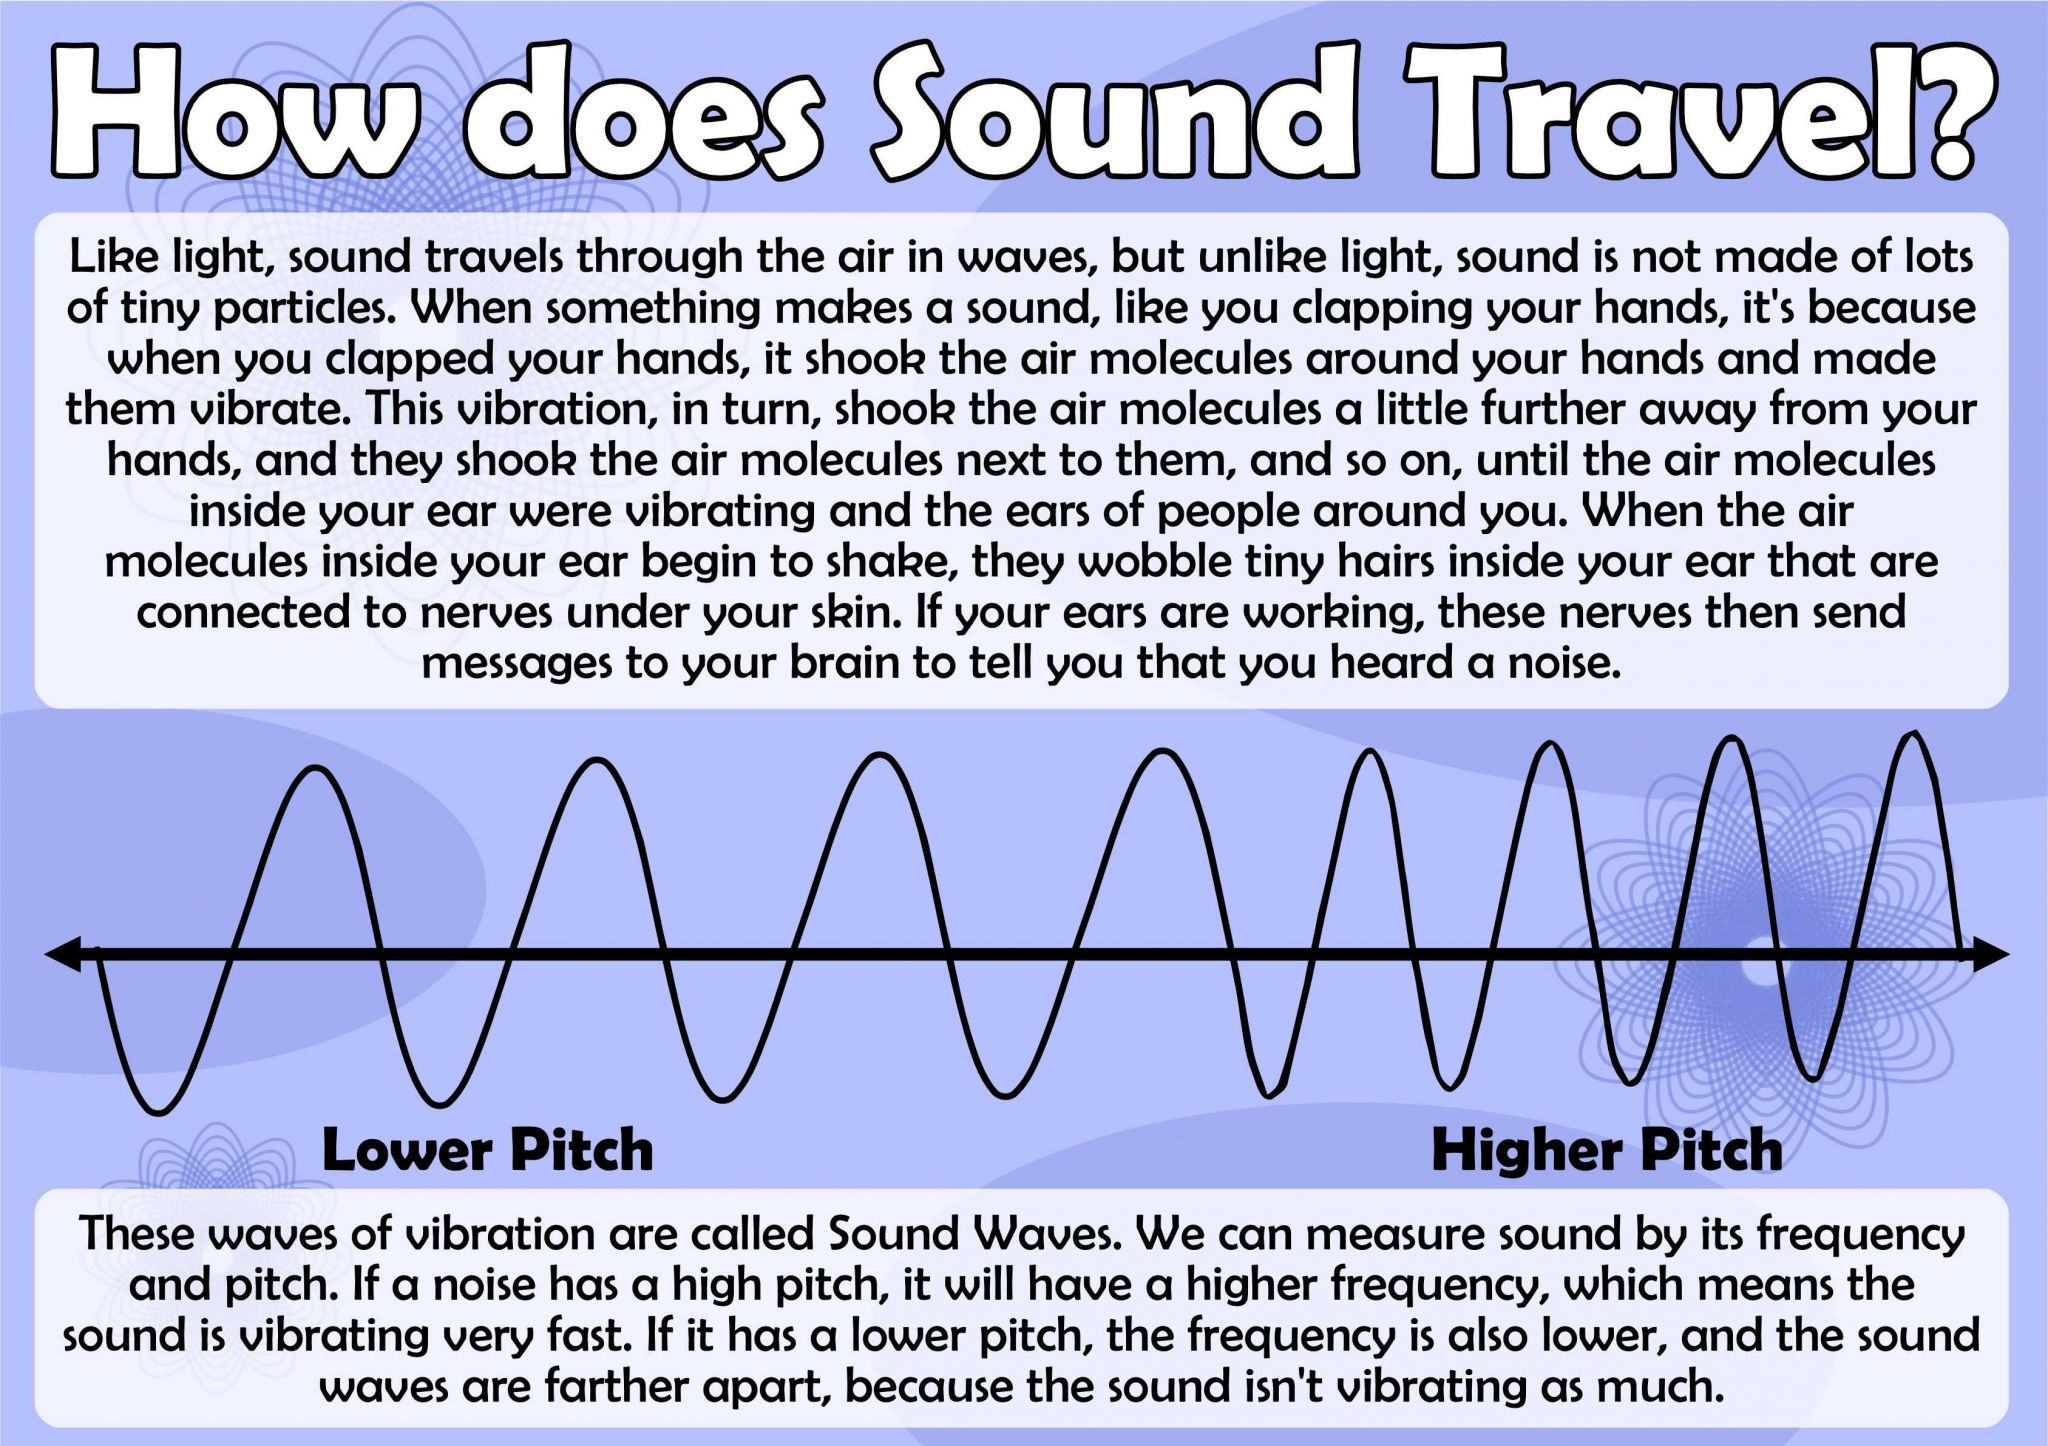 Wave Review Worksheet Answers as Well as How Does sound Travel Poster Science sound